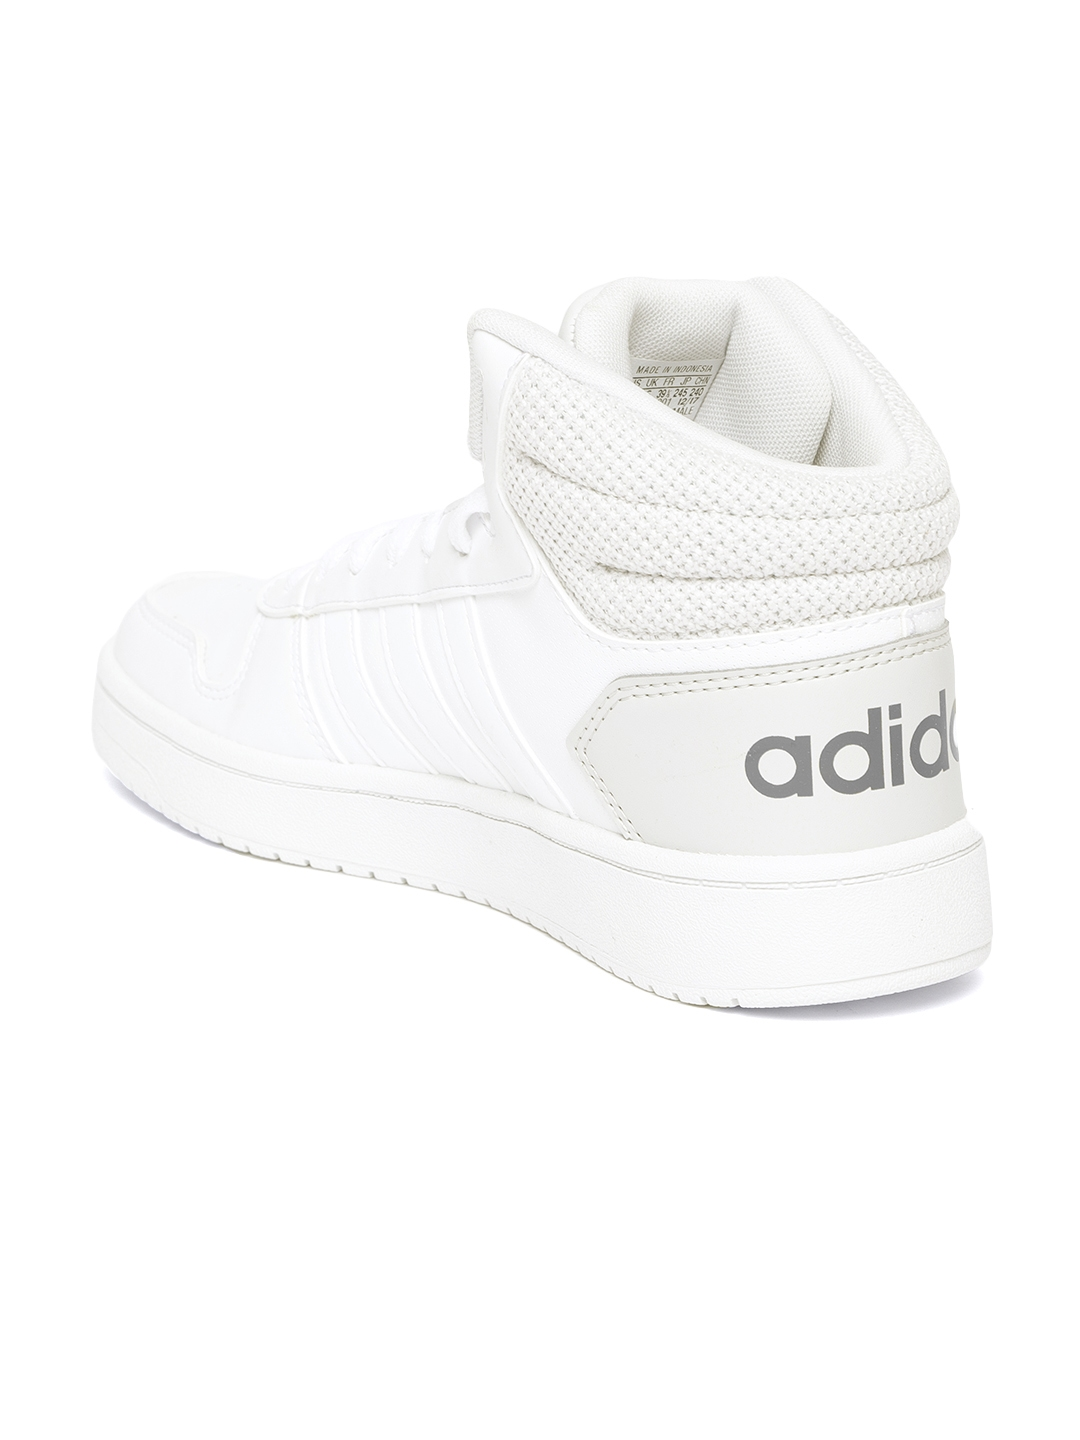 Buy ADIDAS Men White VS Hoops Mid 2.0 Basketball Shoes - Sports ... dc2483f0d